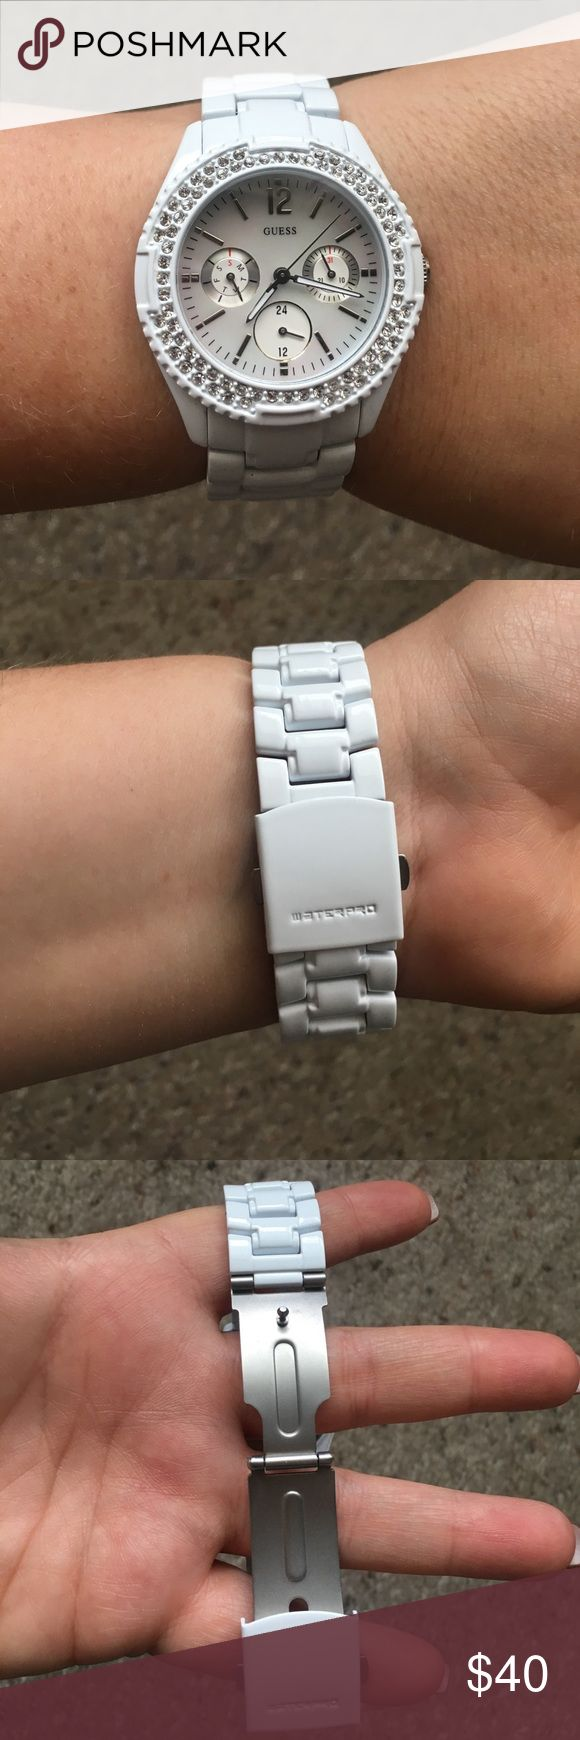 White Guess watch This Guess watch has a pearly iridescent face that also shows day of the week, the date, and the hour in military time. Needs new battery. Waterproof up to 330 feet. Guess Accessories Watches